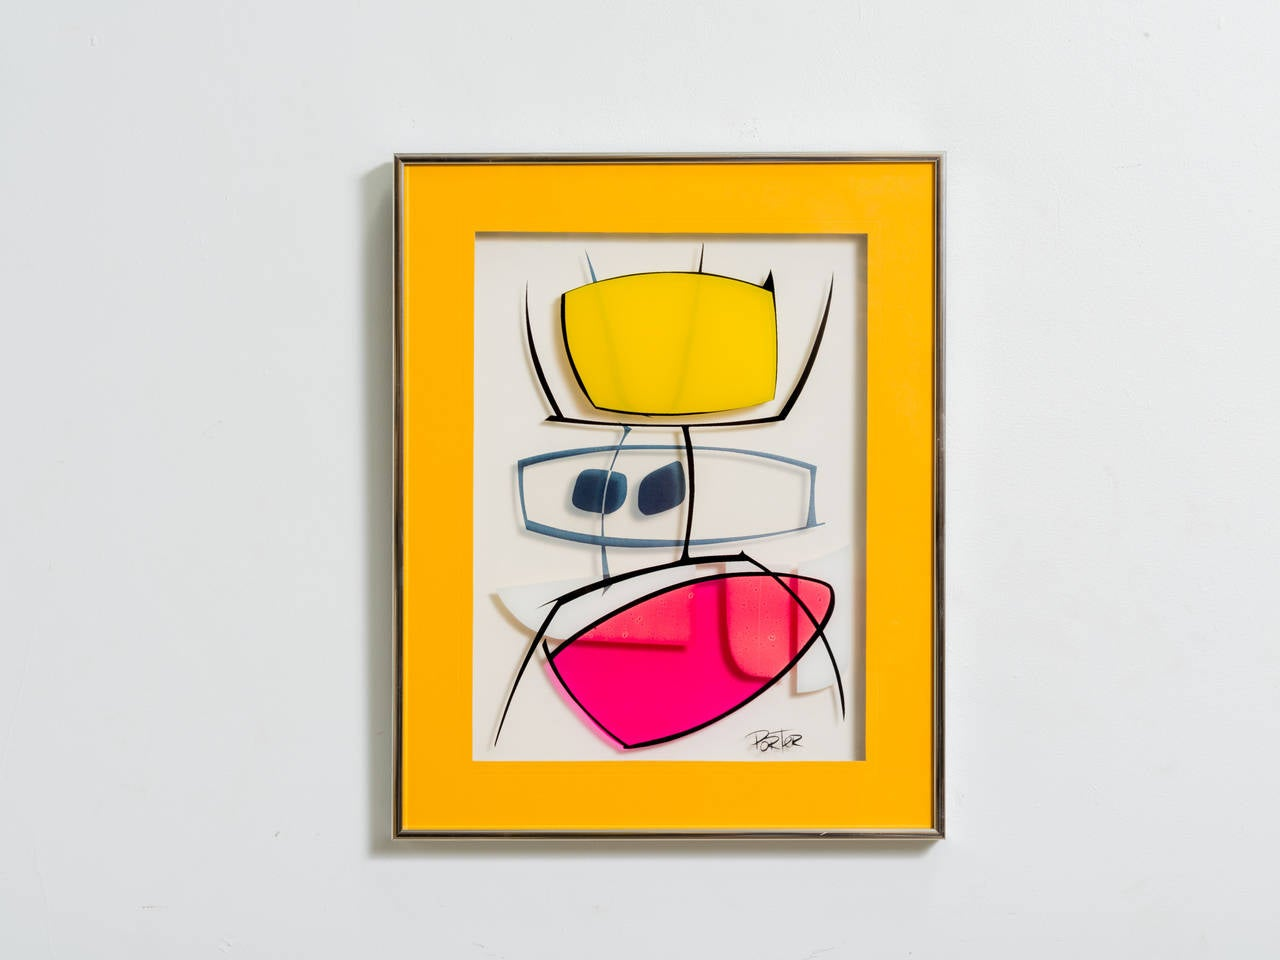 Modernist Serigraph on Glass In Good Condition For Sale In Tarrytown, NY